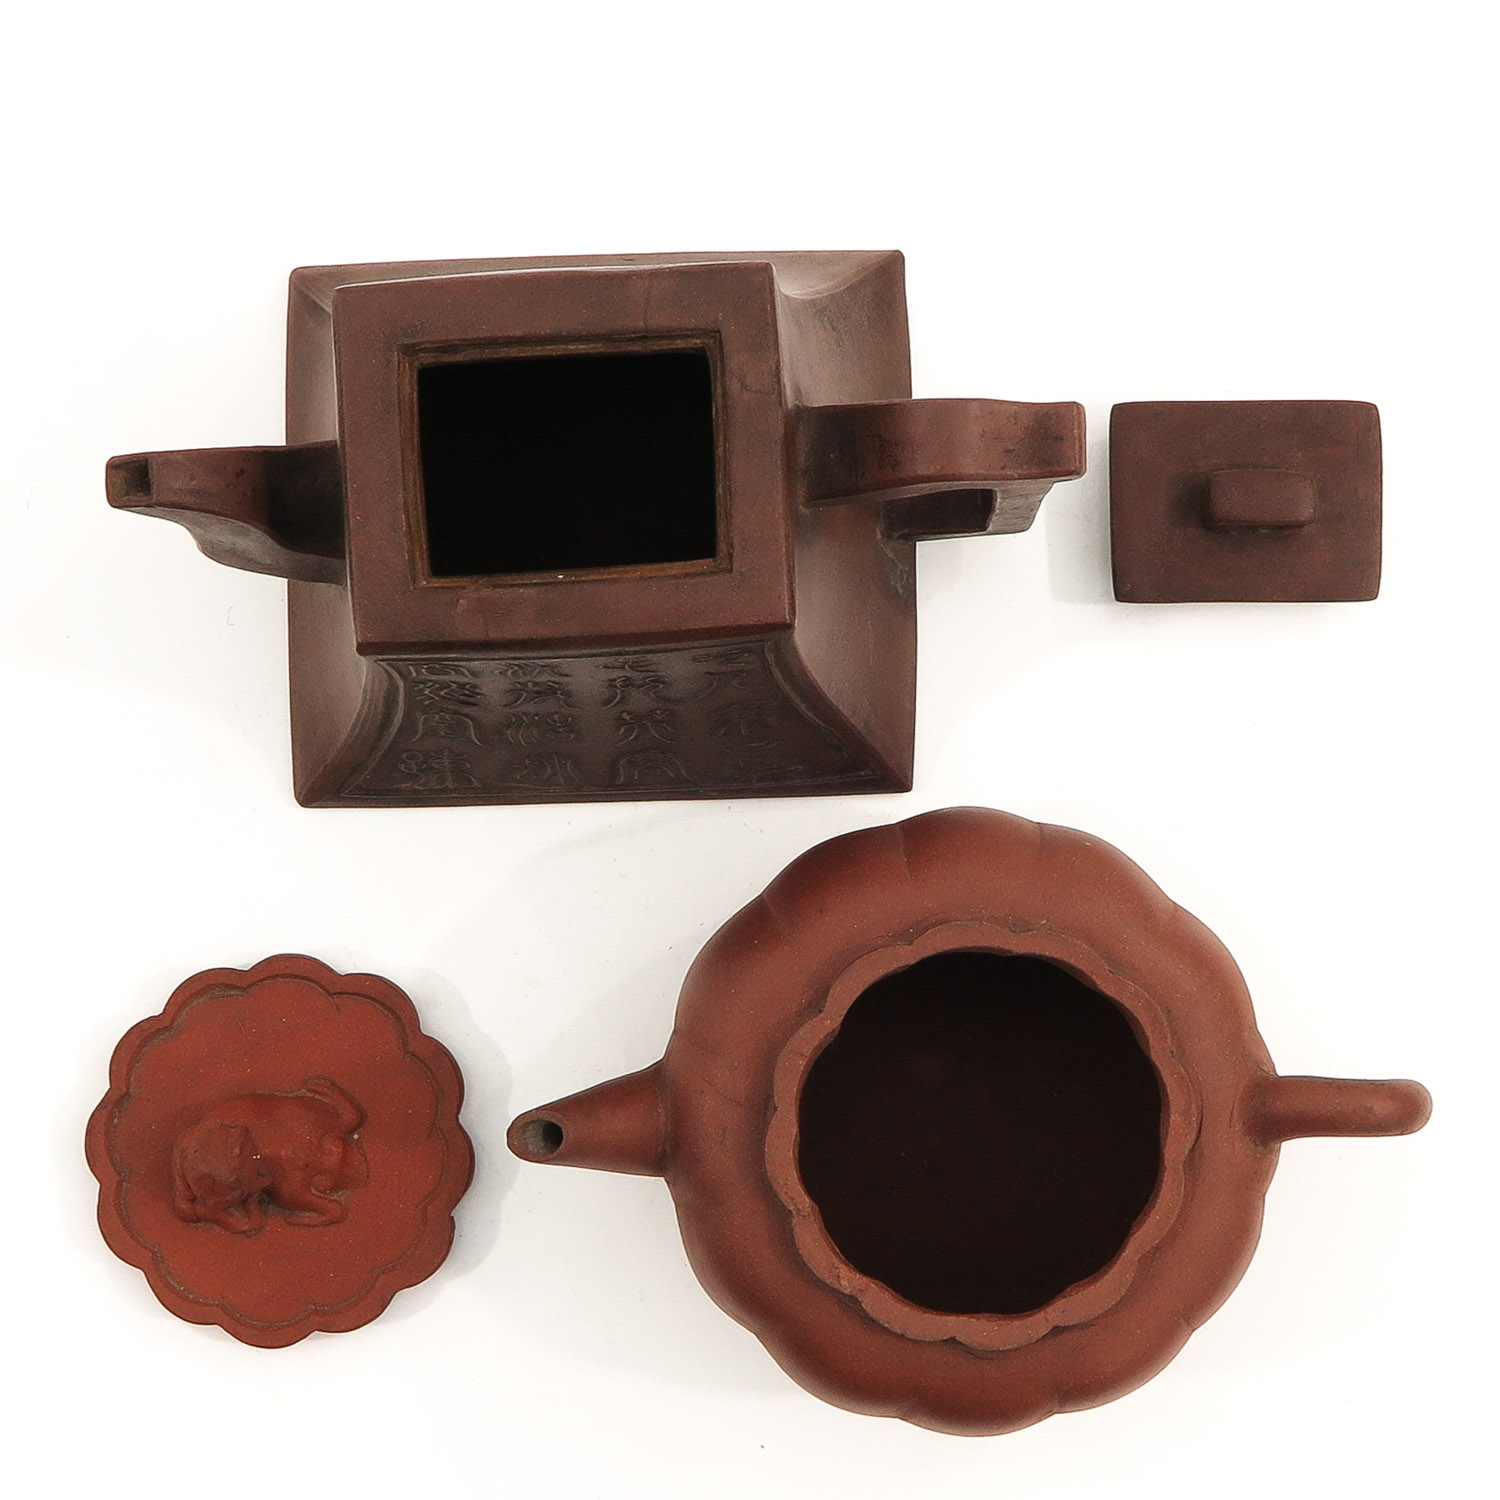 A Lot of 2 Yixing Teapots - Image 5 of 10